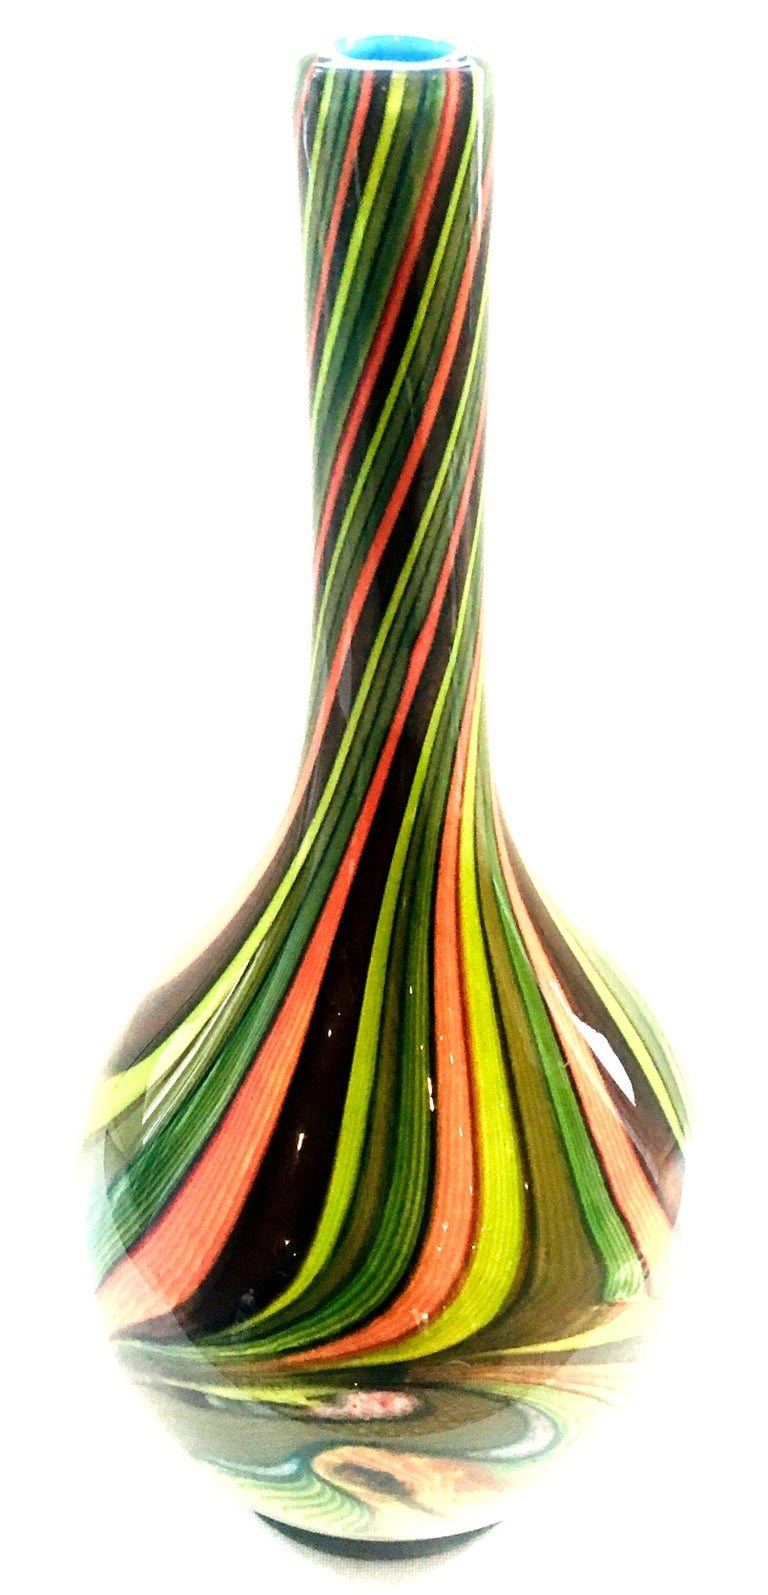 20th Century Murano Style Cased Art Glass Striped Vase In Excellent Condition For Sale In West Palm Beach, FL